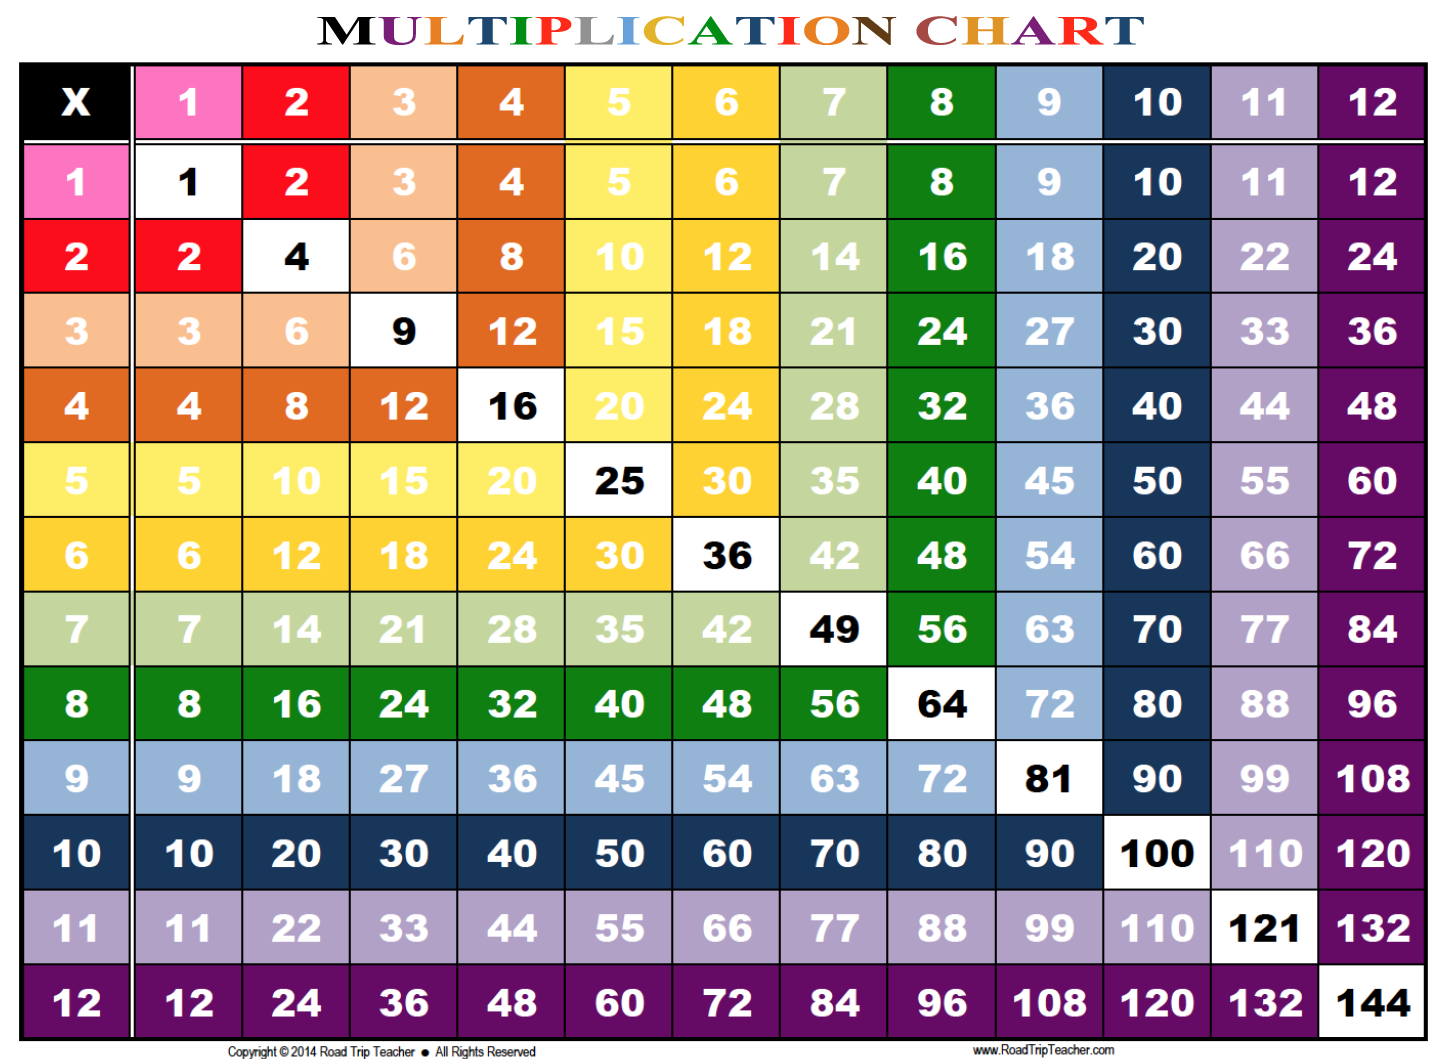 Multiplication Chart 1 12 Printable